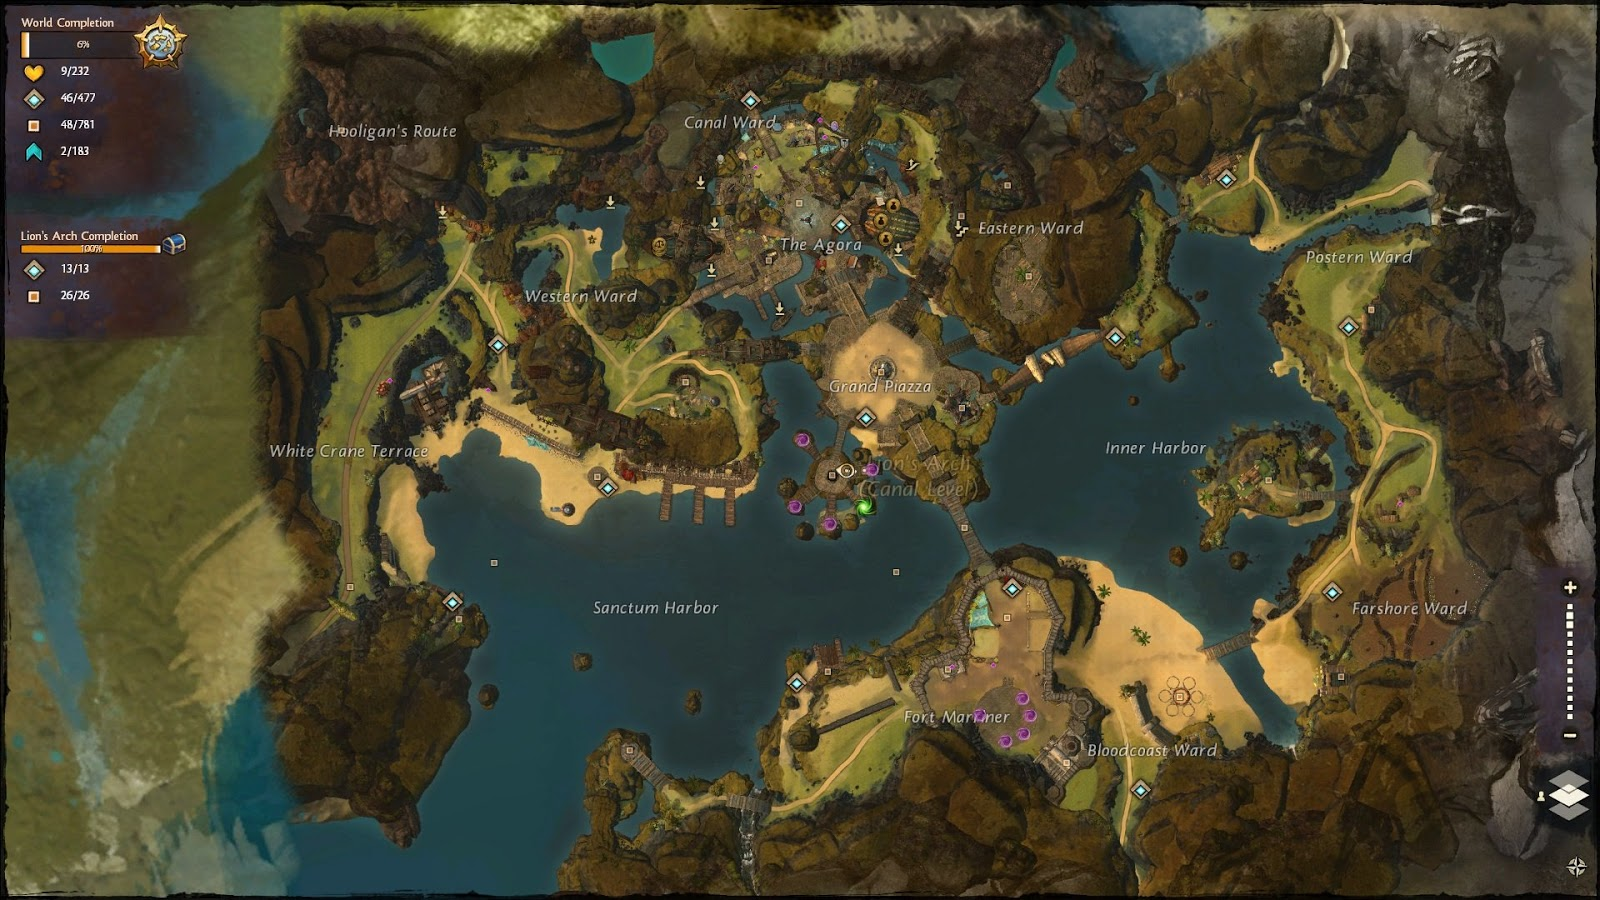 Nizaams game art blog elements of game design part eight open world map guild wars 2 gumiabroncs Gallery